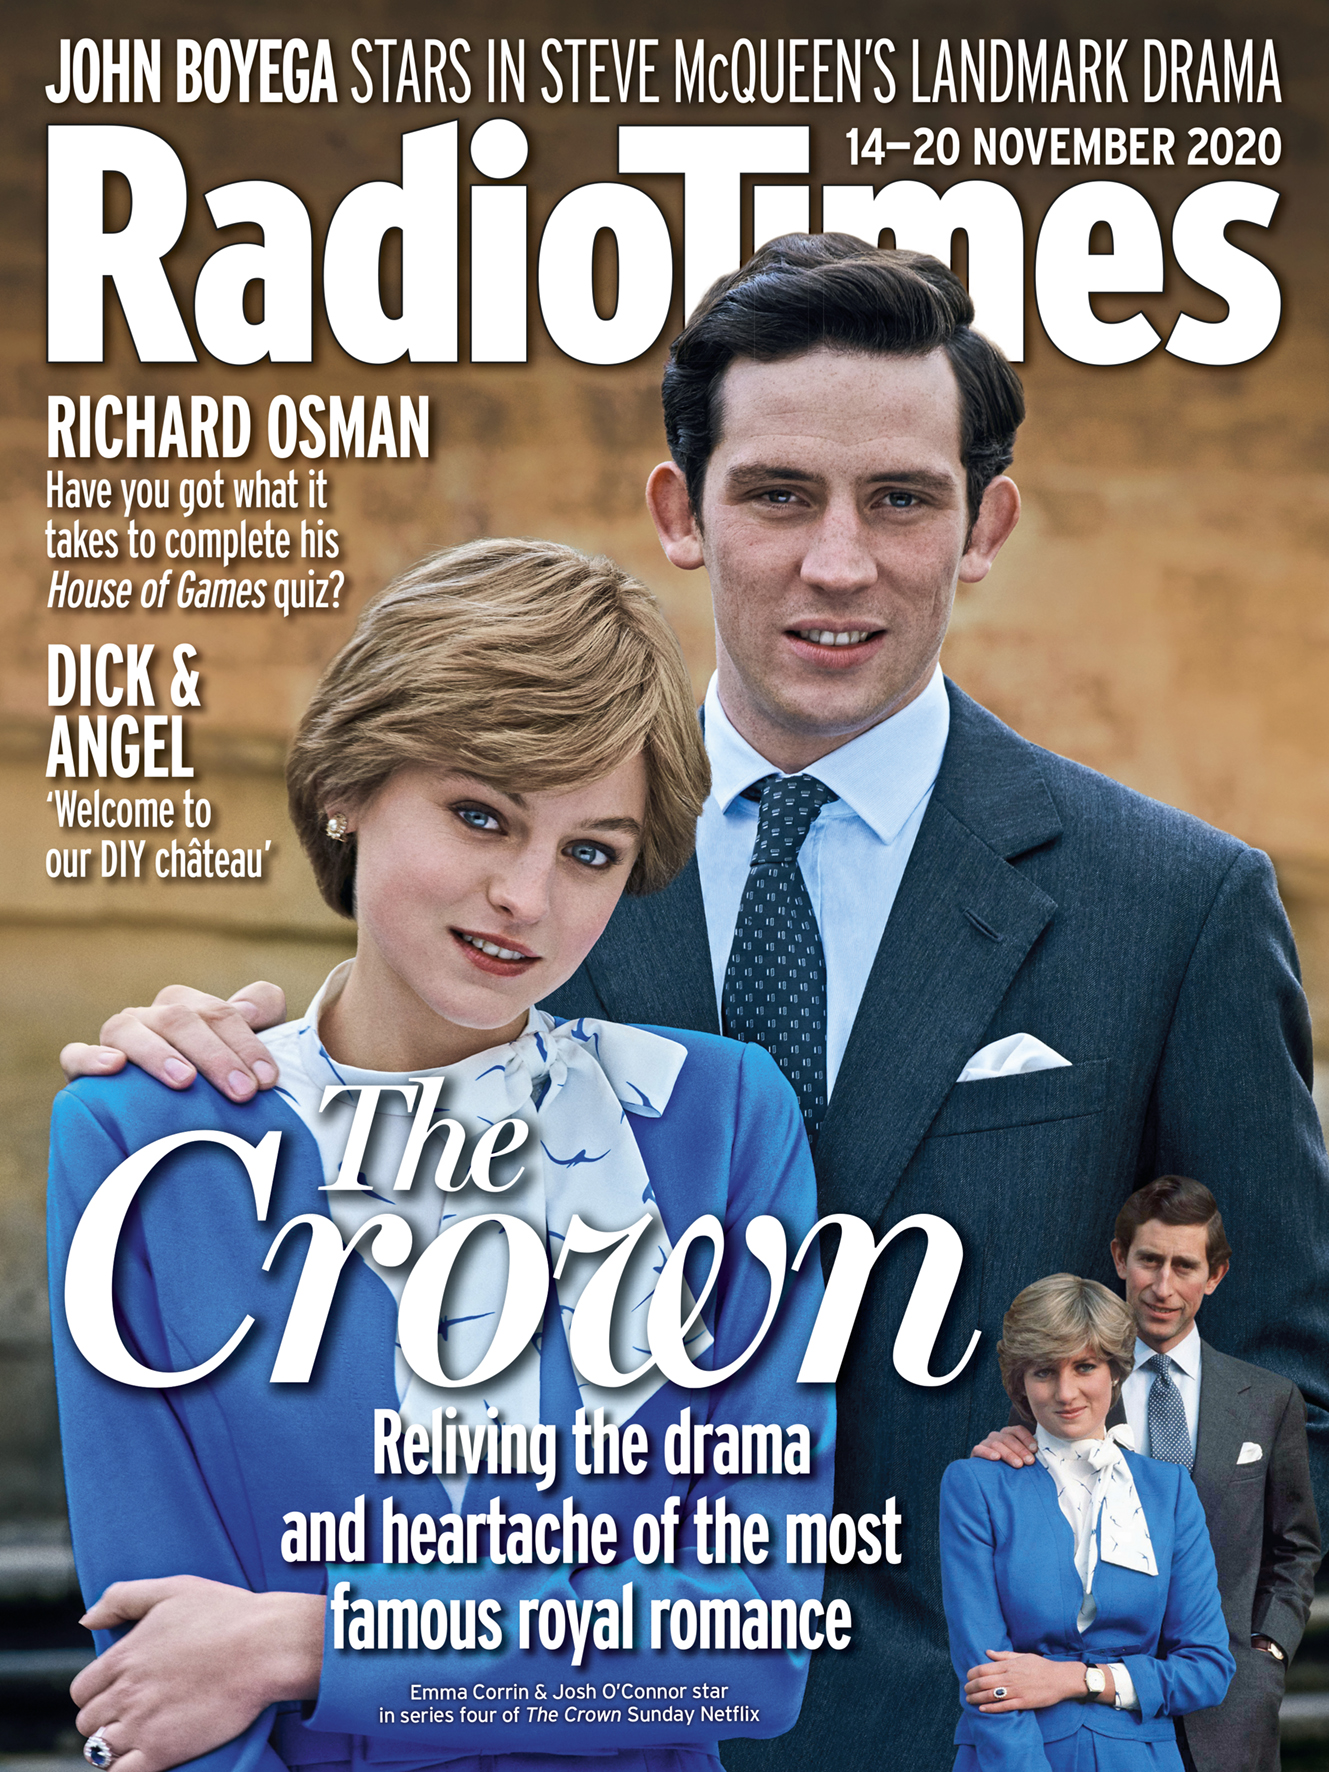 The fourth series of the royal drama is set in the late 1970s